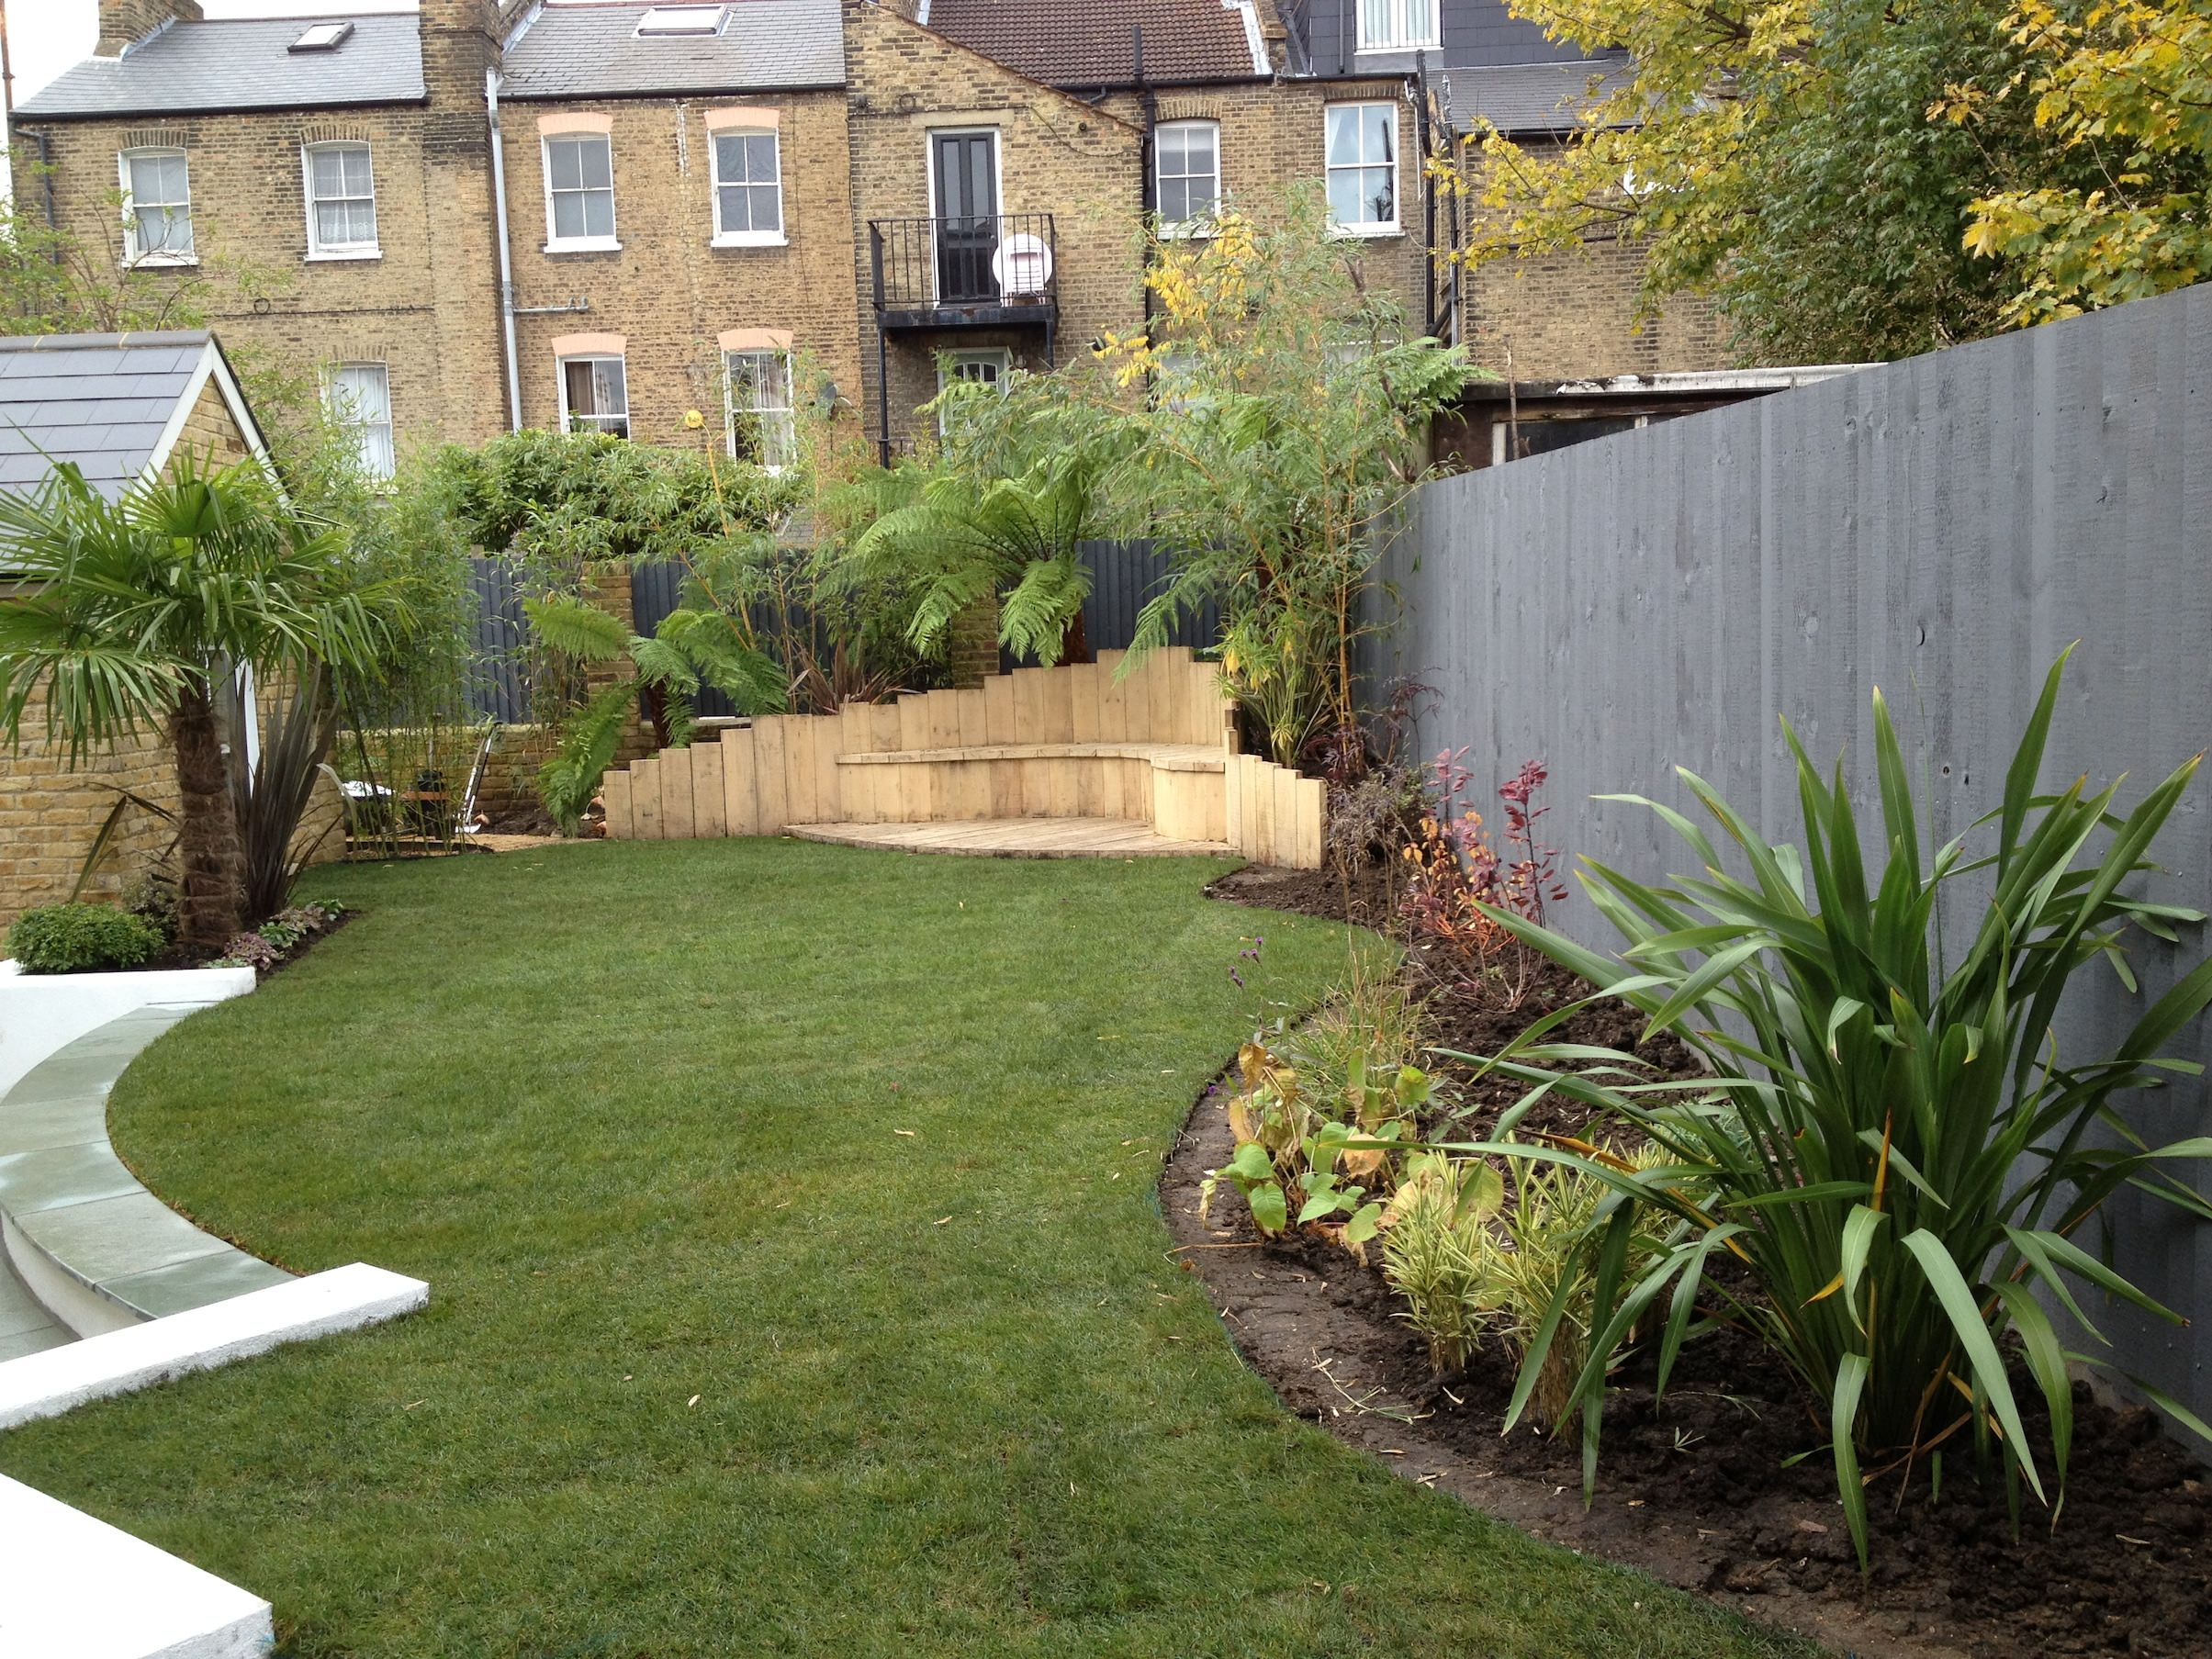 Low maintenance garden designs garden club london for No maintenance garden designs